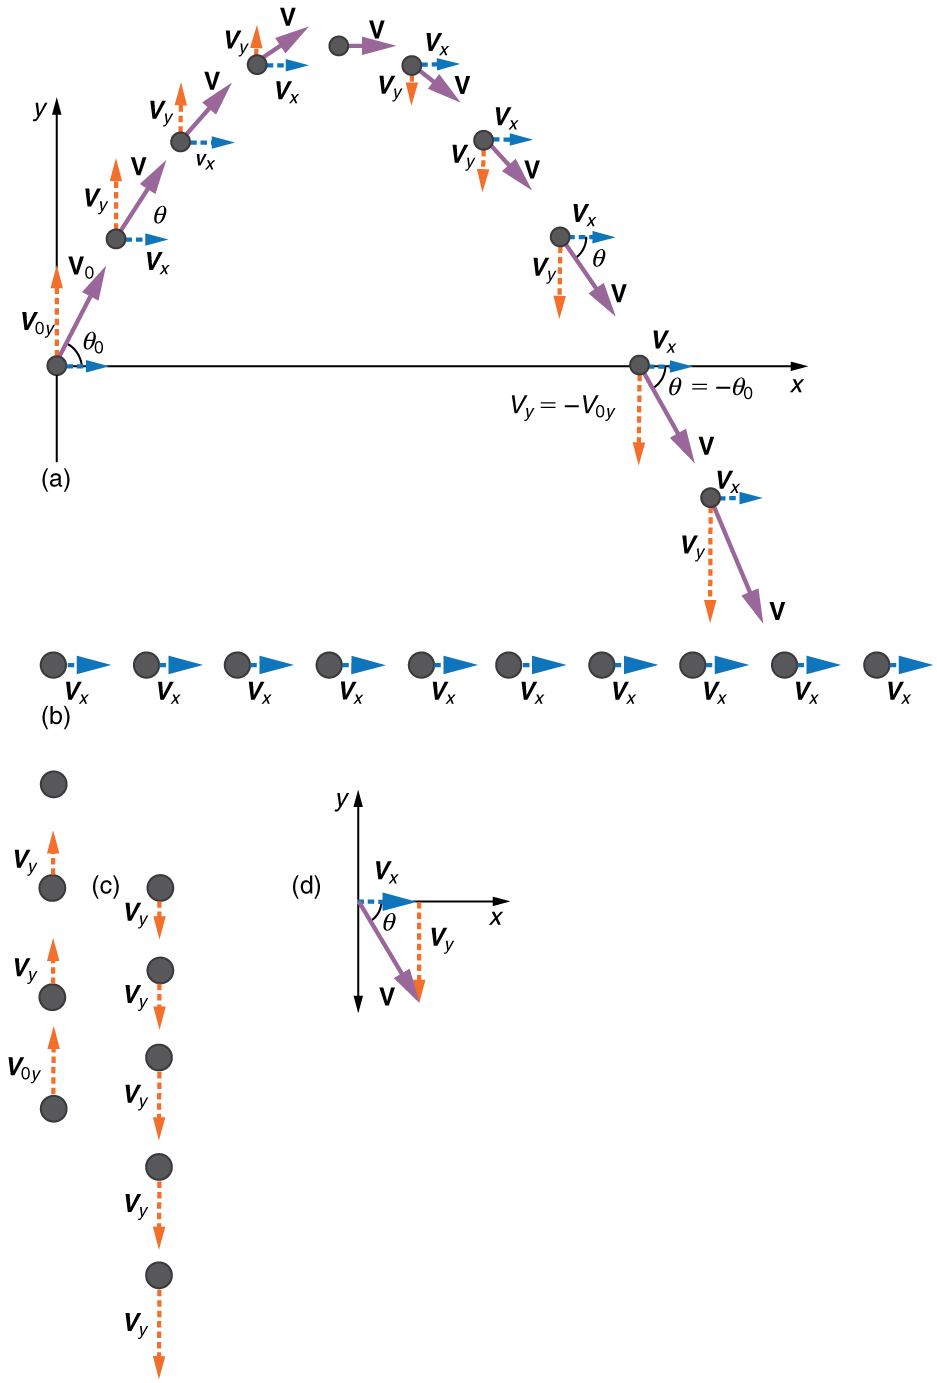 In part a the figure shows projectile motion of a ball with initial velocity of v zero at an angle of theta zero with the horizontal x axis. The horizontal component v x and the vertical component v y at various positions of ball in the projectile path is shown. In part b only the horizontal velocity component v sub x is shown whose magnitude is constant at various positions in the path. In part c only vertical velocity component v sub y is shown. The vertical velocity component v sub y is upwards till it reaches the maximum point and then its direction changes to downwards. In part d resultant v of horizontal velocity component v sub x and downward vertical velocity component v sub y is found which makes an angle theta with the horizontal x axis. The direction of resultant velocity v is towards south east.